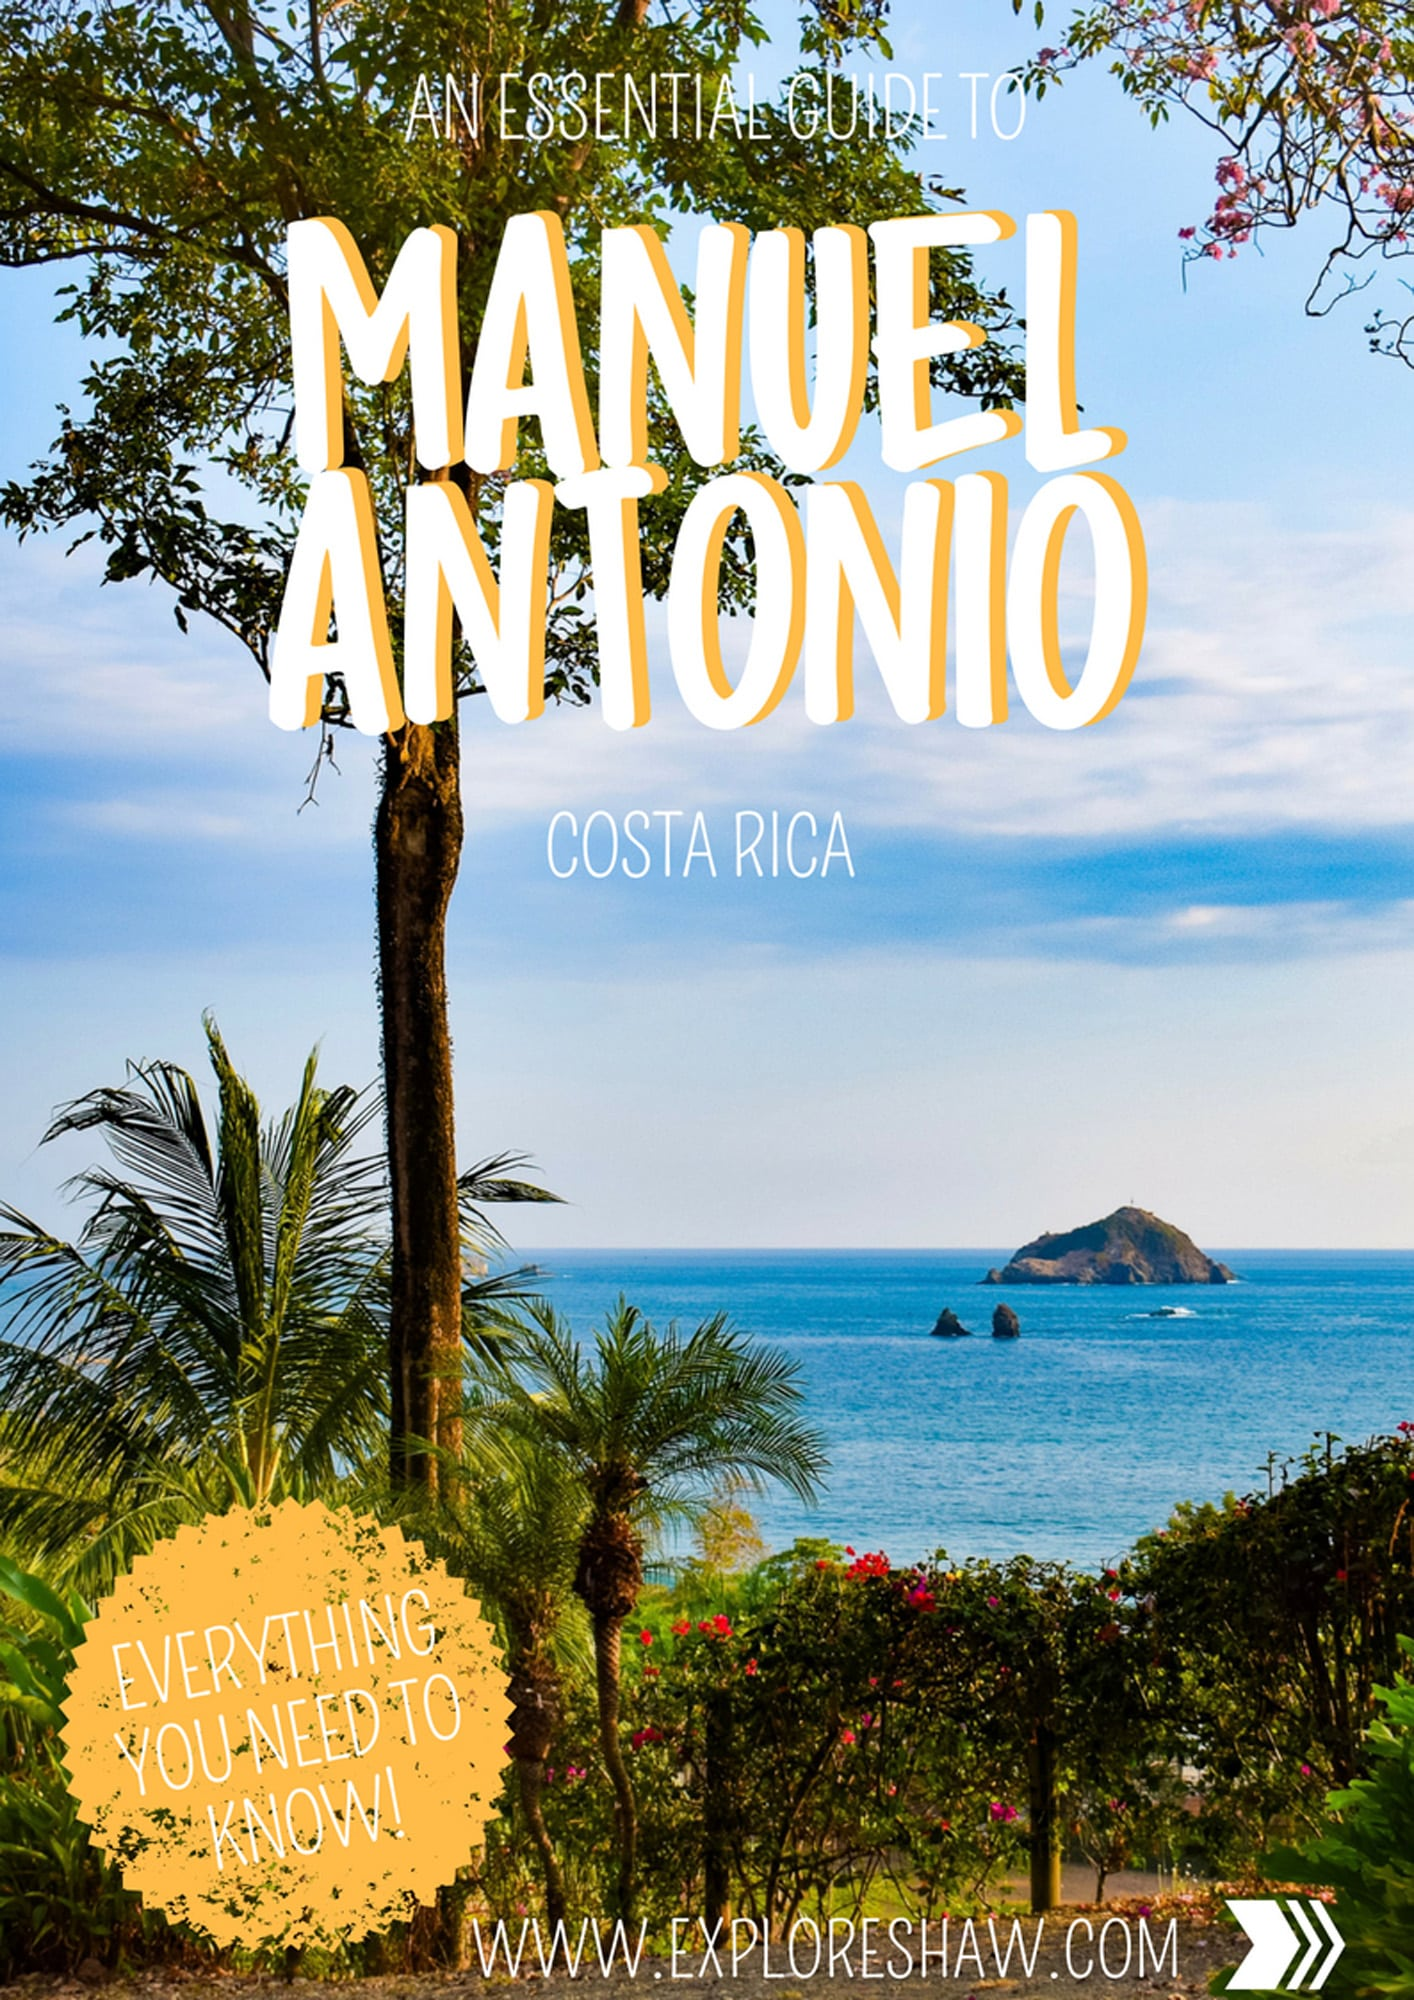 AN ESSENTIAL GUIDE TO MANUEL ANTONIO